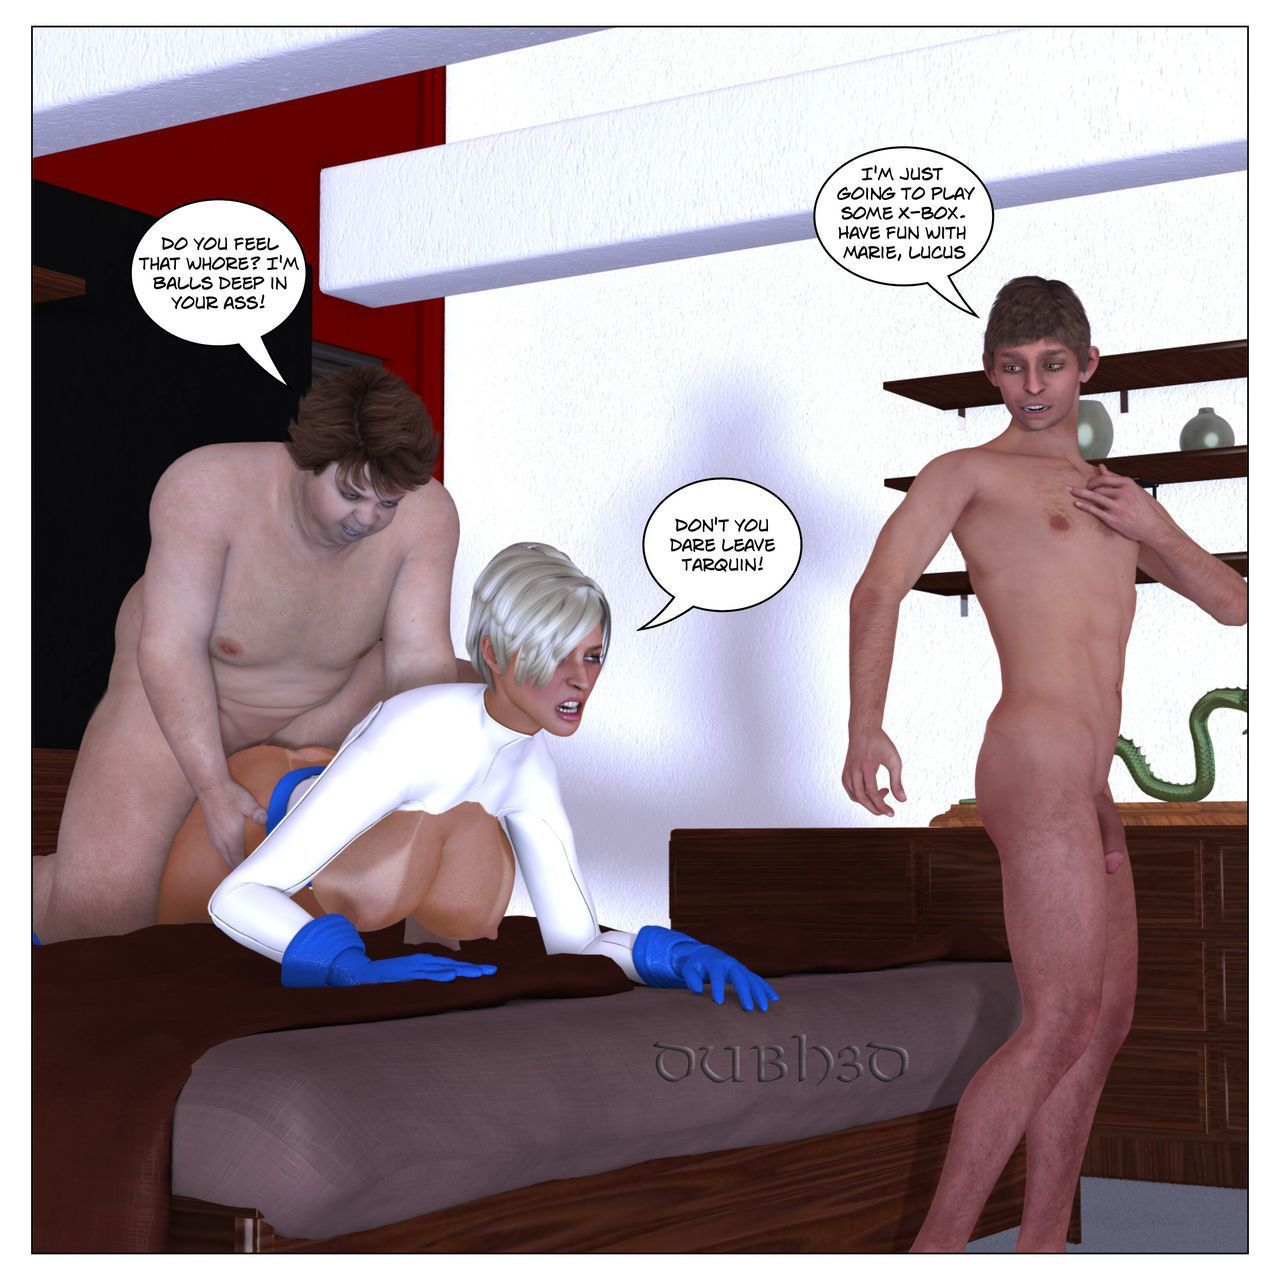 [Dubh3d] Marie Claude - Cosplay Threesome